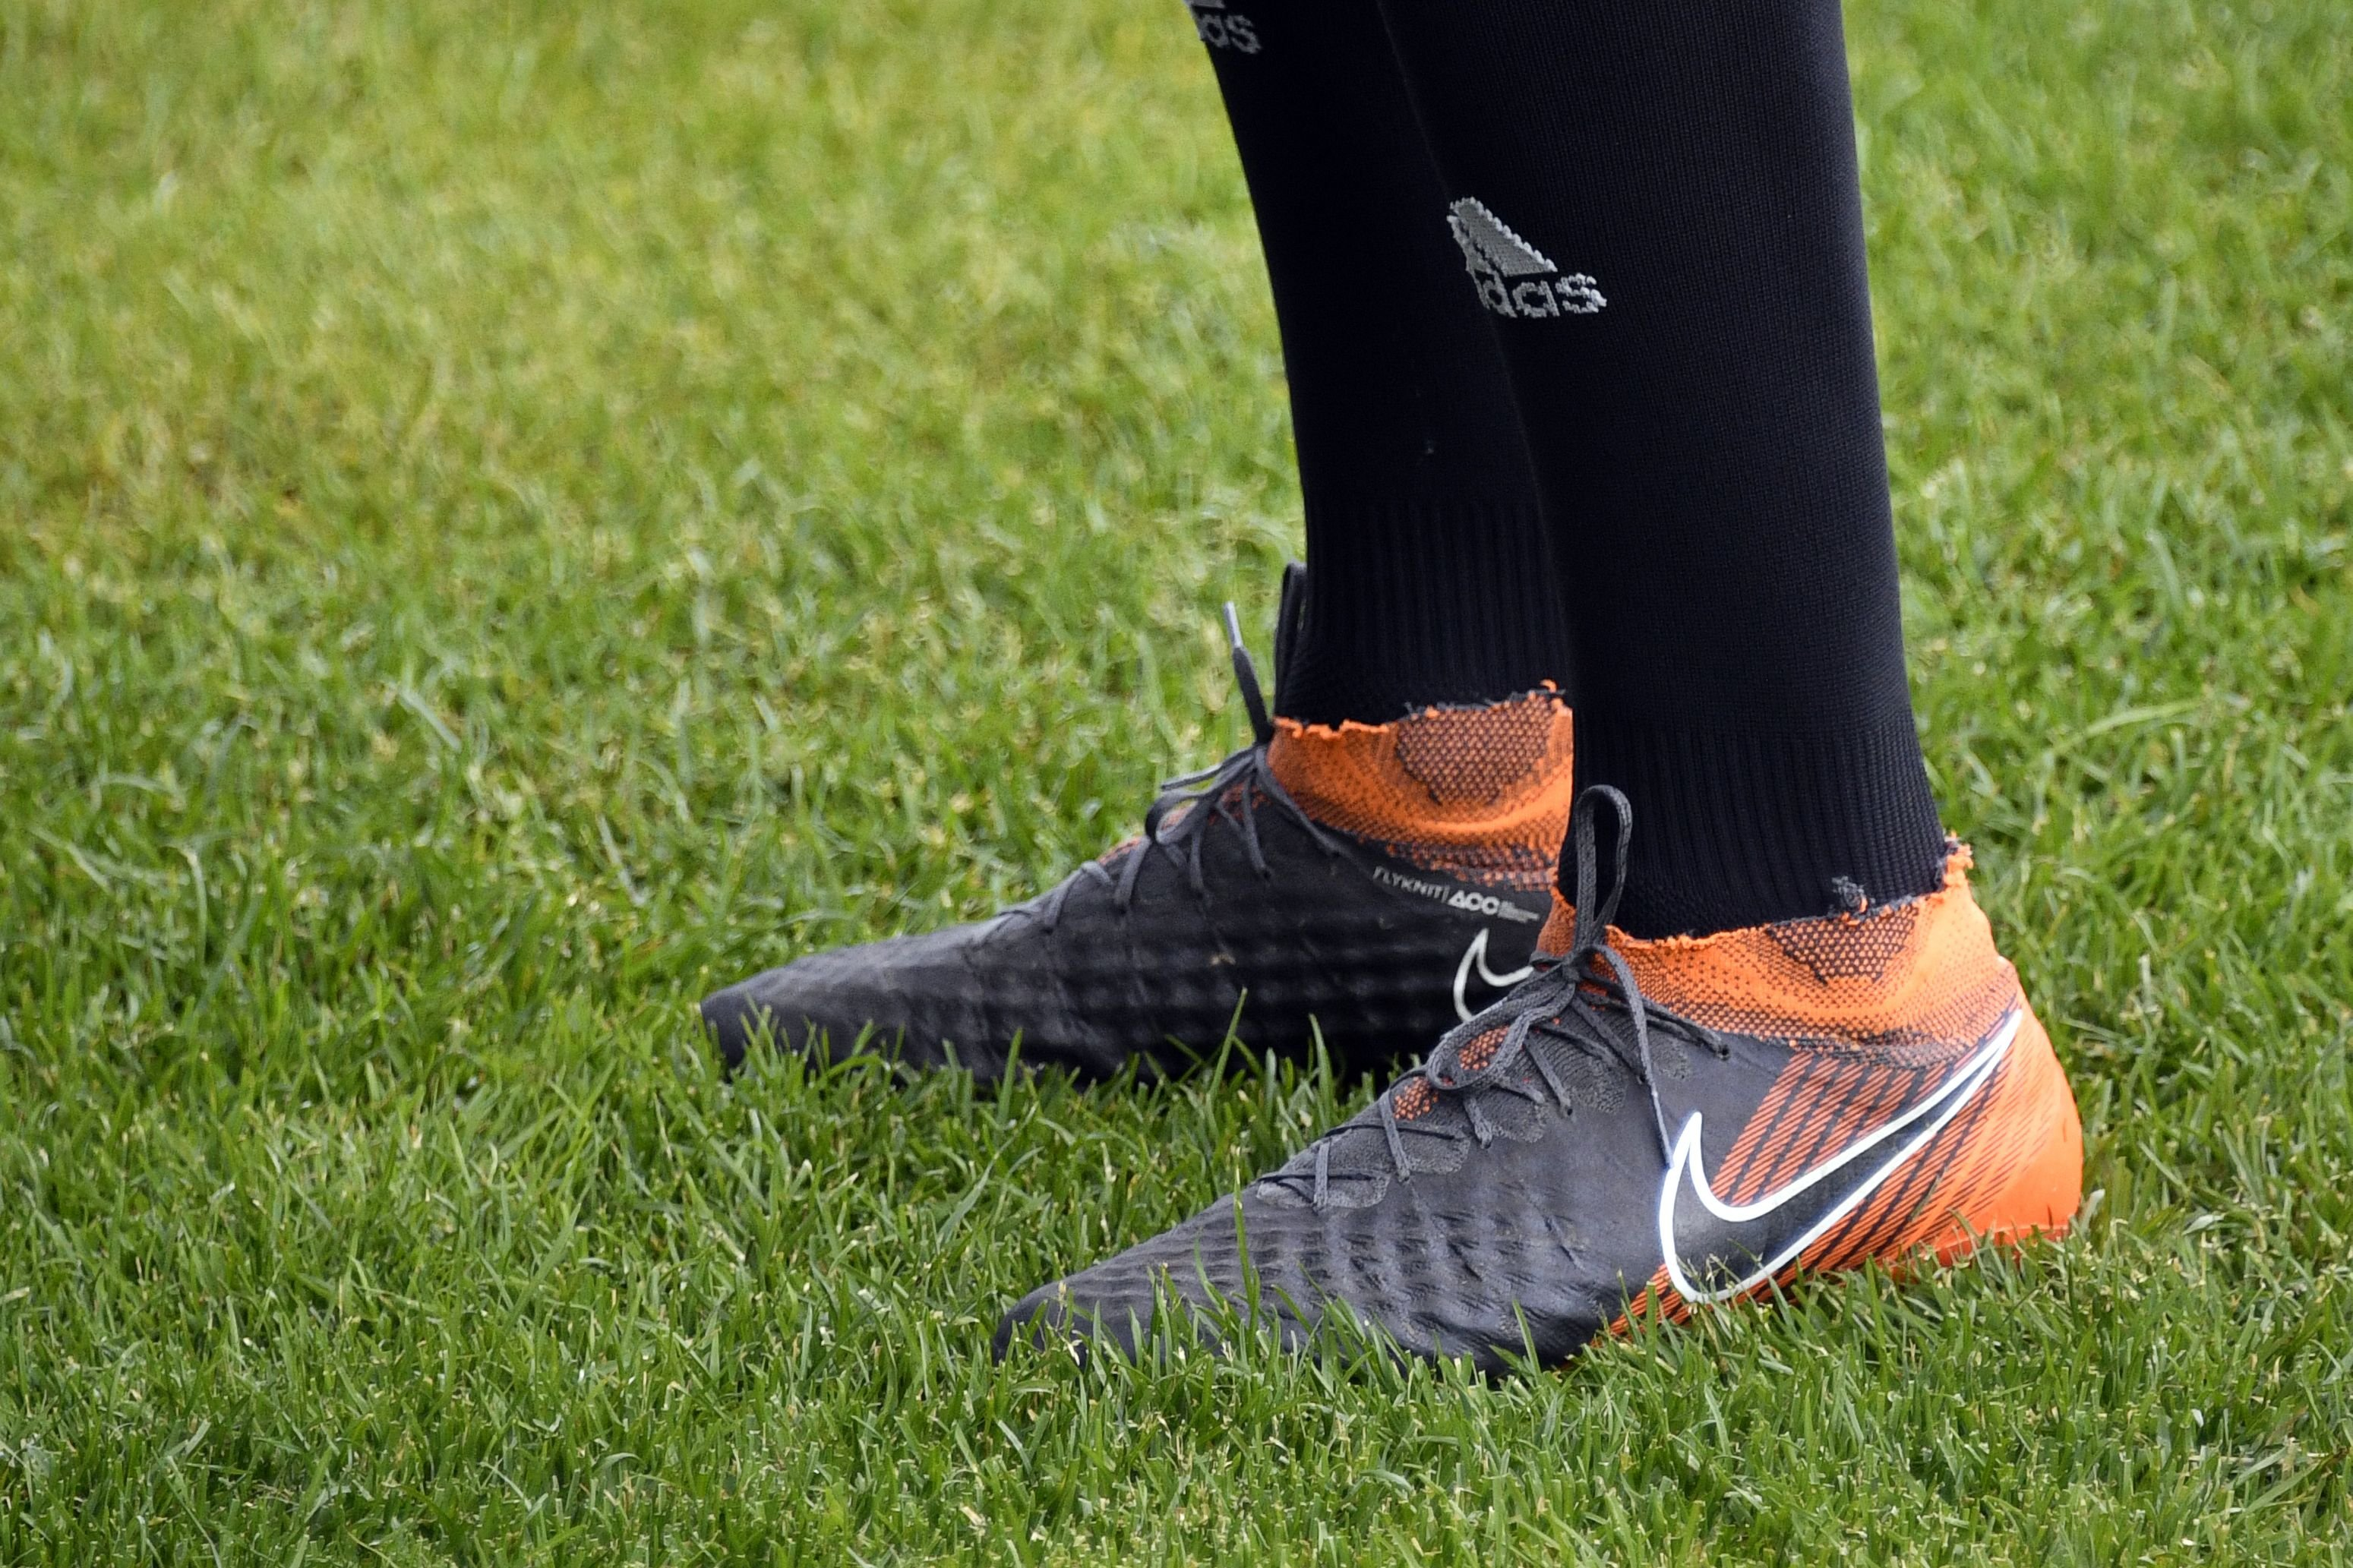 A picture taken on 14 June 2018 shows the football shoes of Iran's midfielder Saeid Ezatolahi upon his arrival to take part in a training session in Bakovka, outside Moscow, ahead of the Russia 2018 World Cup.